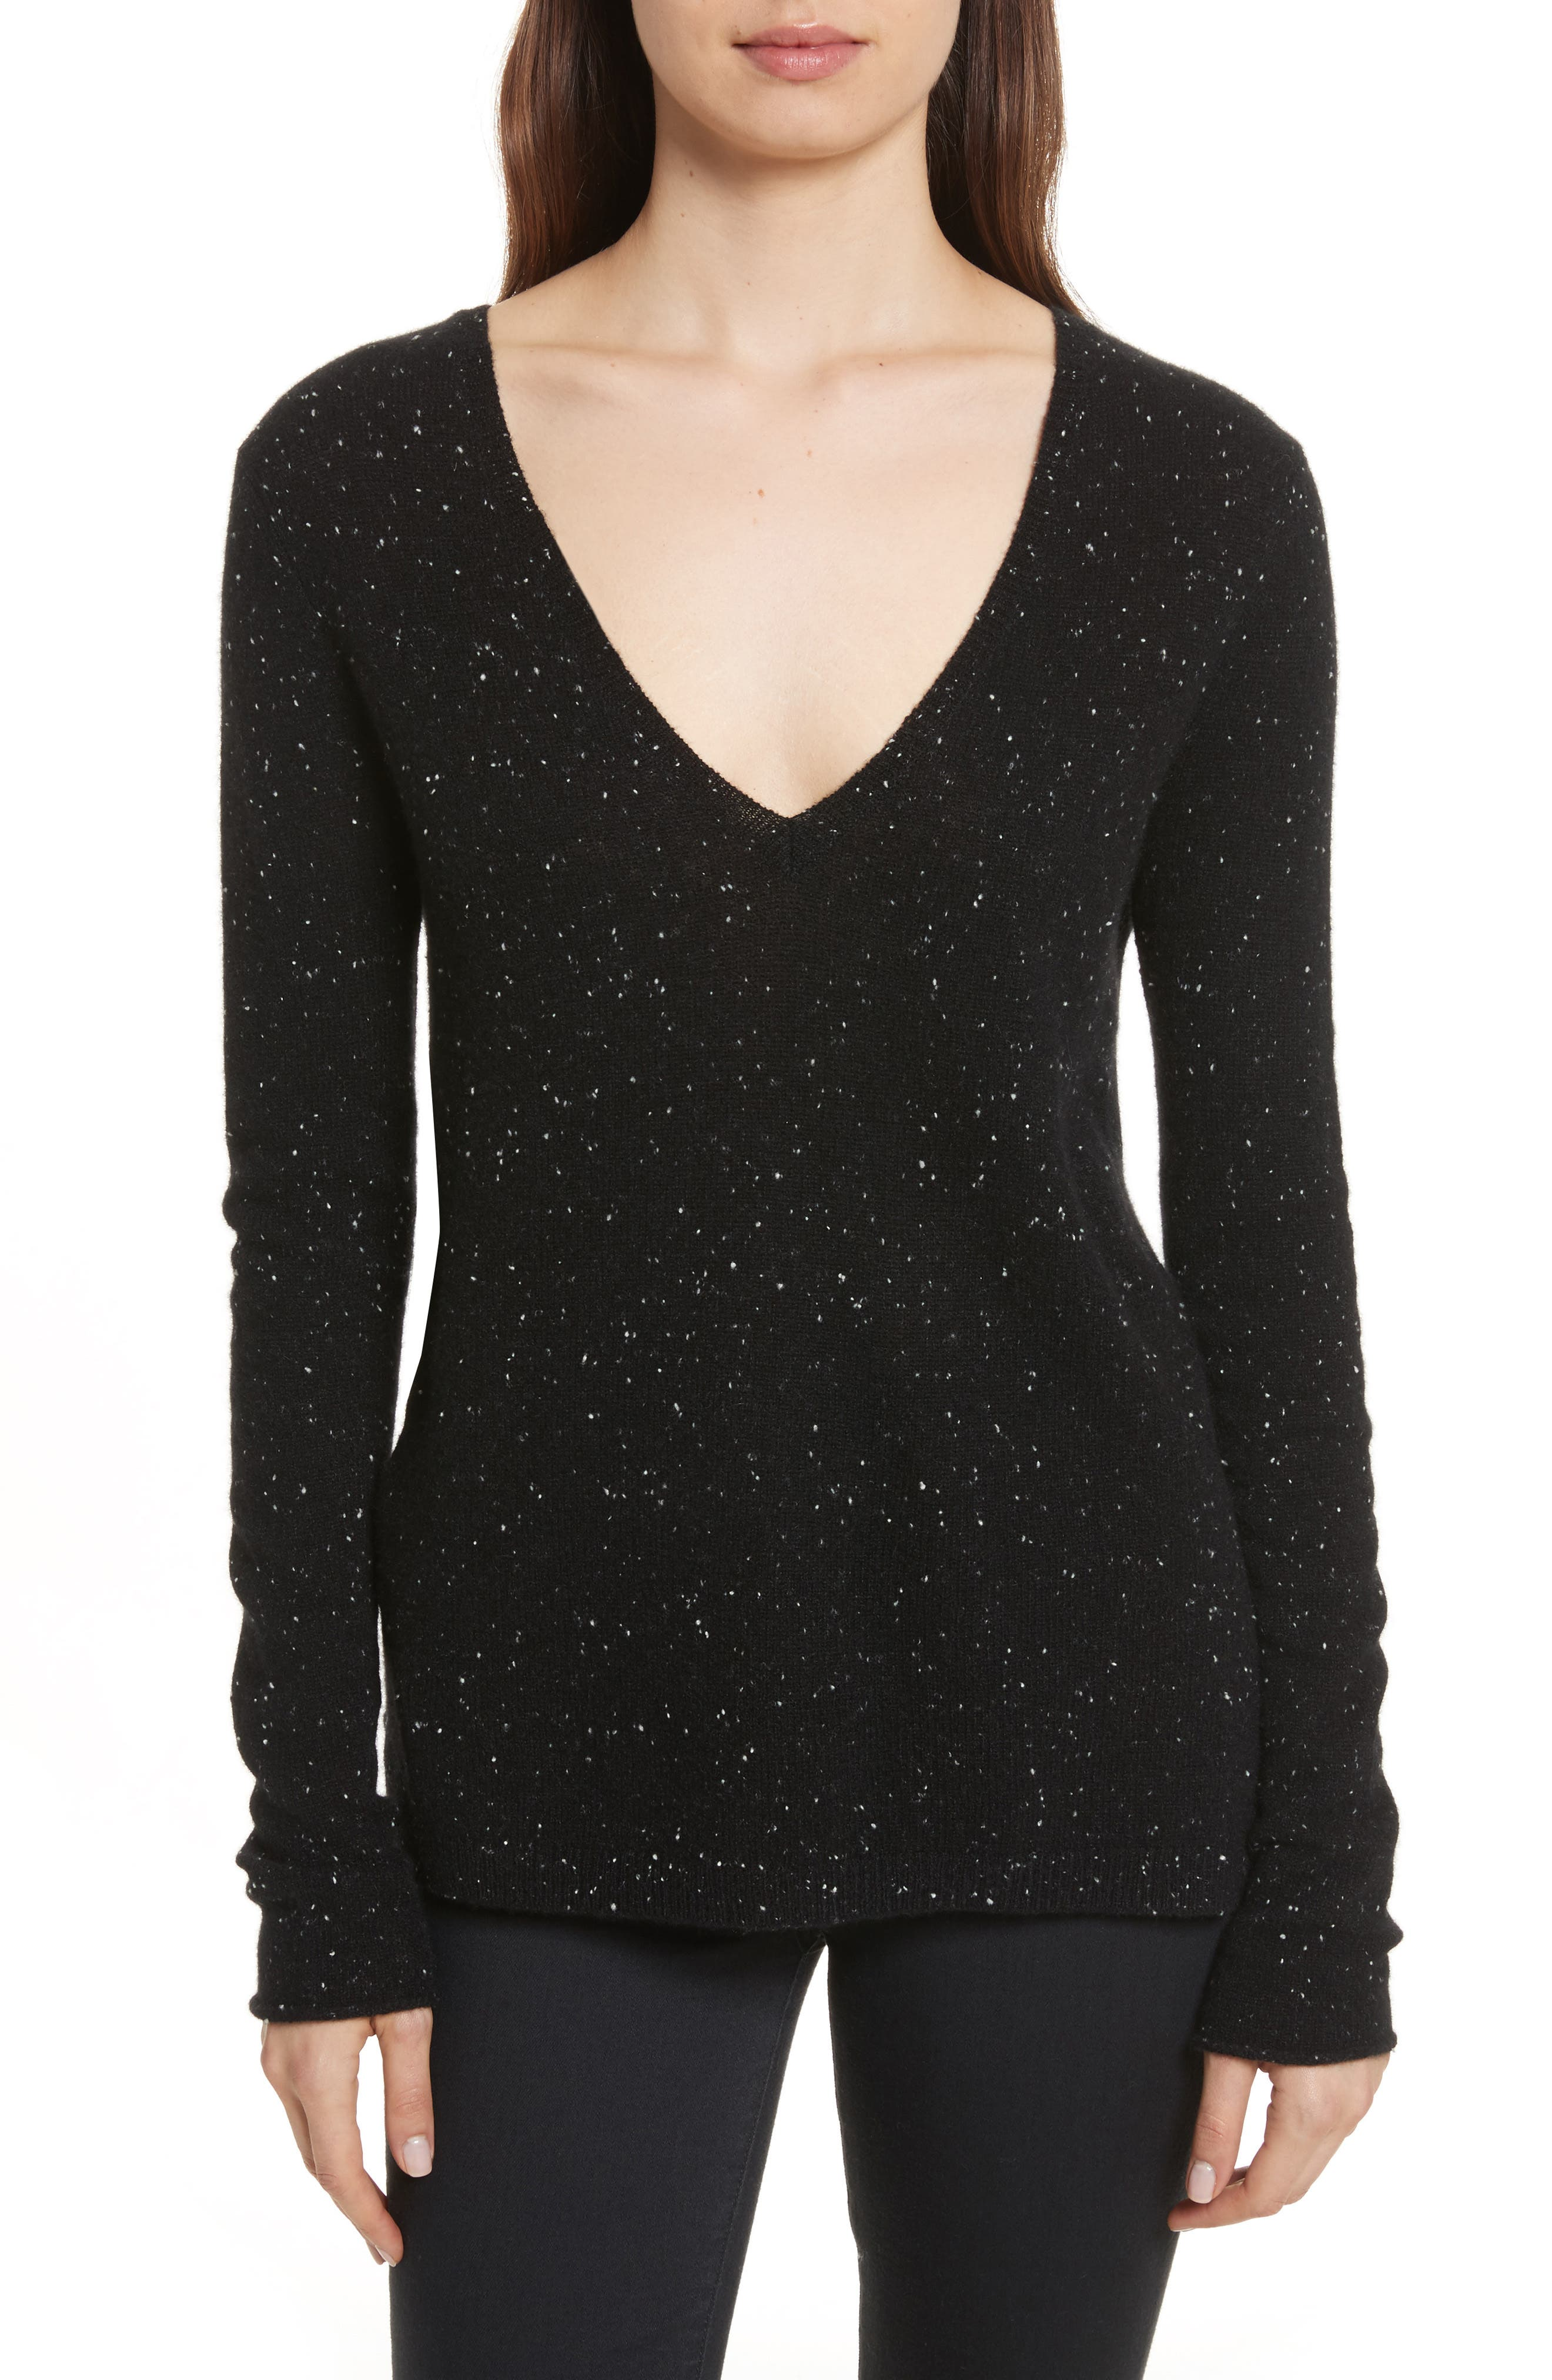 Donegal Cashmere Sweater,                         Main,                         color, 001